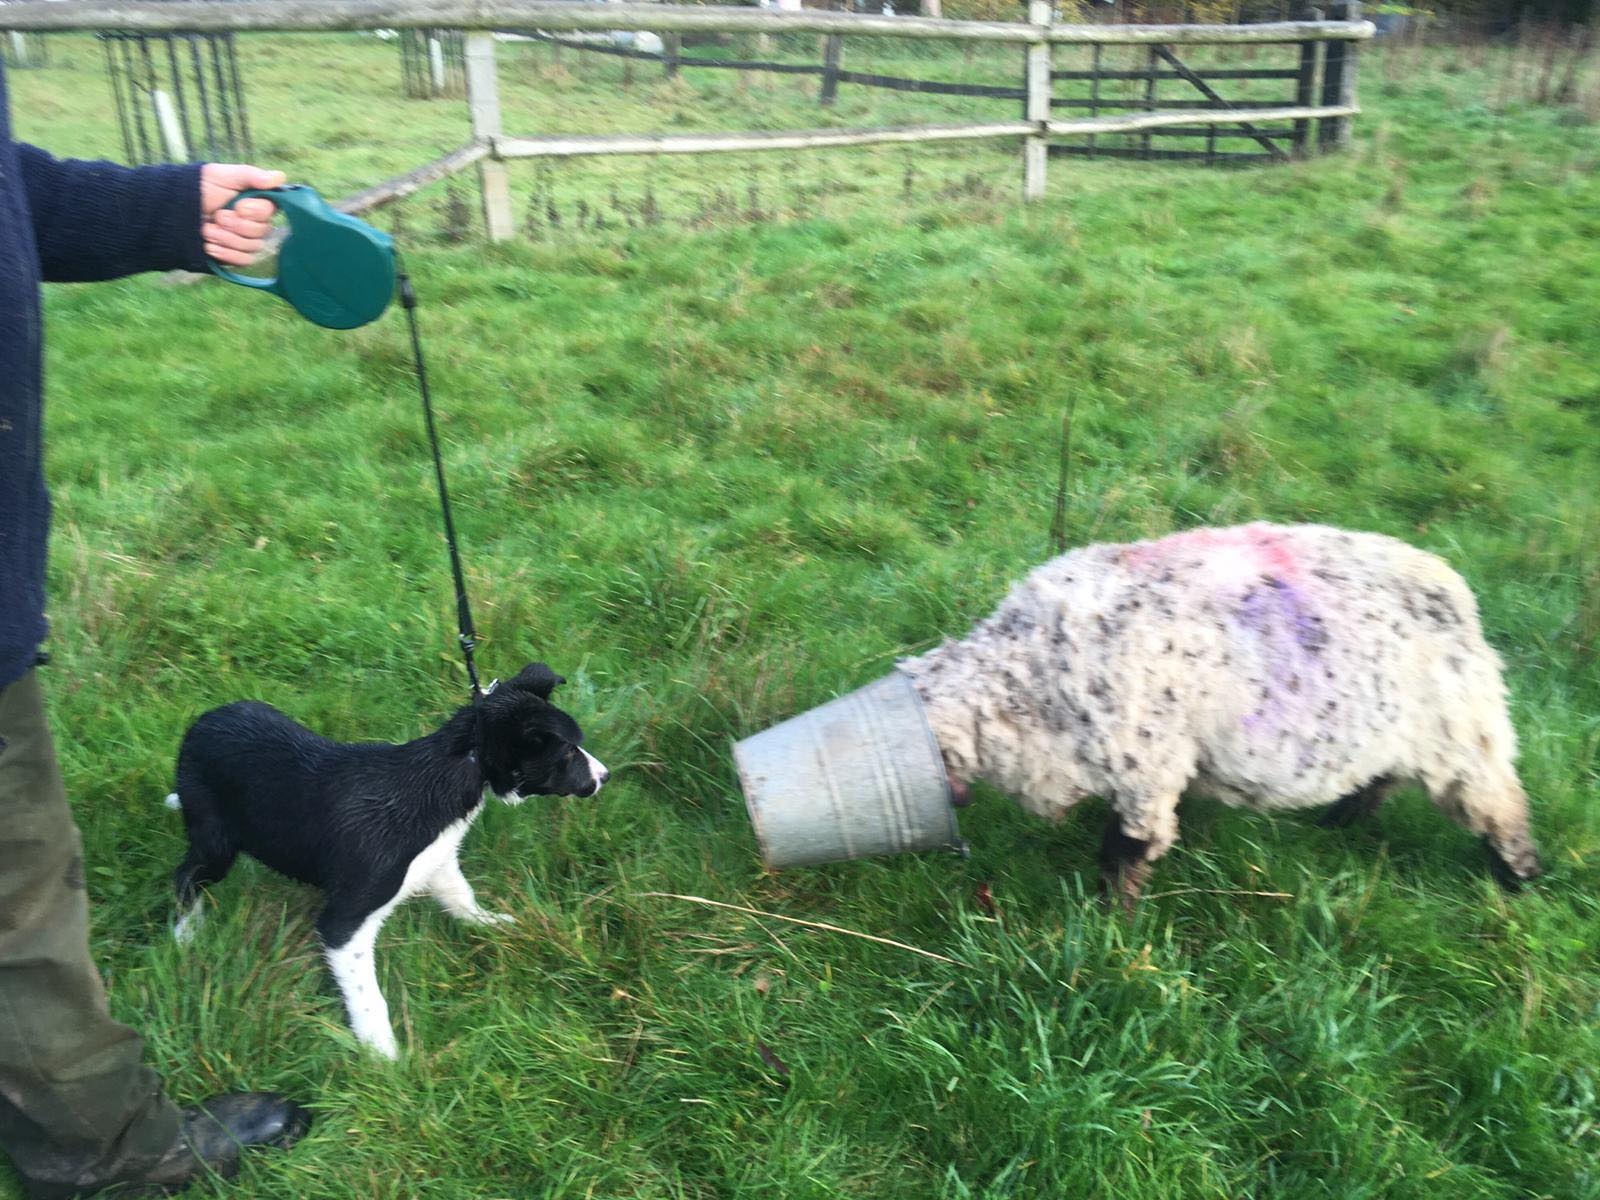 sheep dog puppy observing sheep with head it's head in a bucket